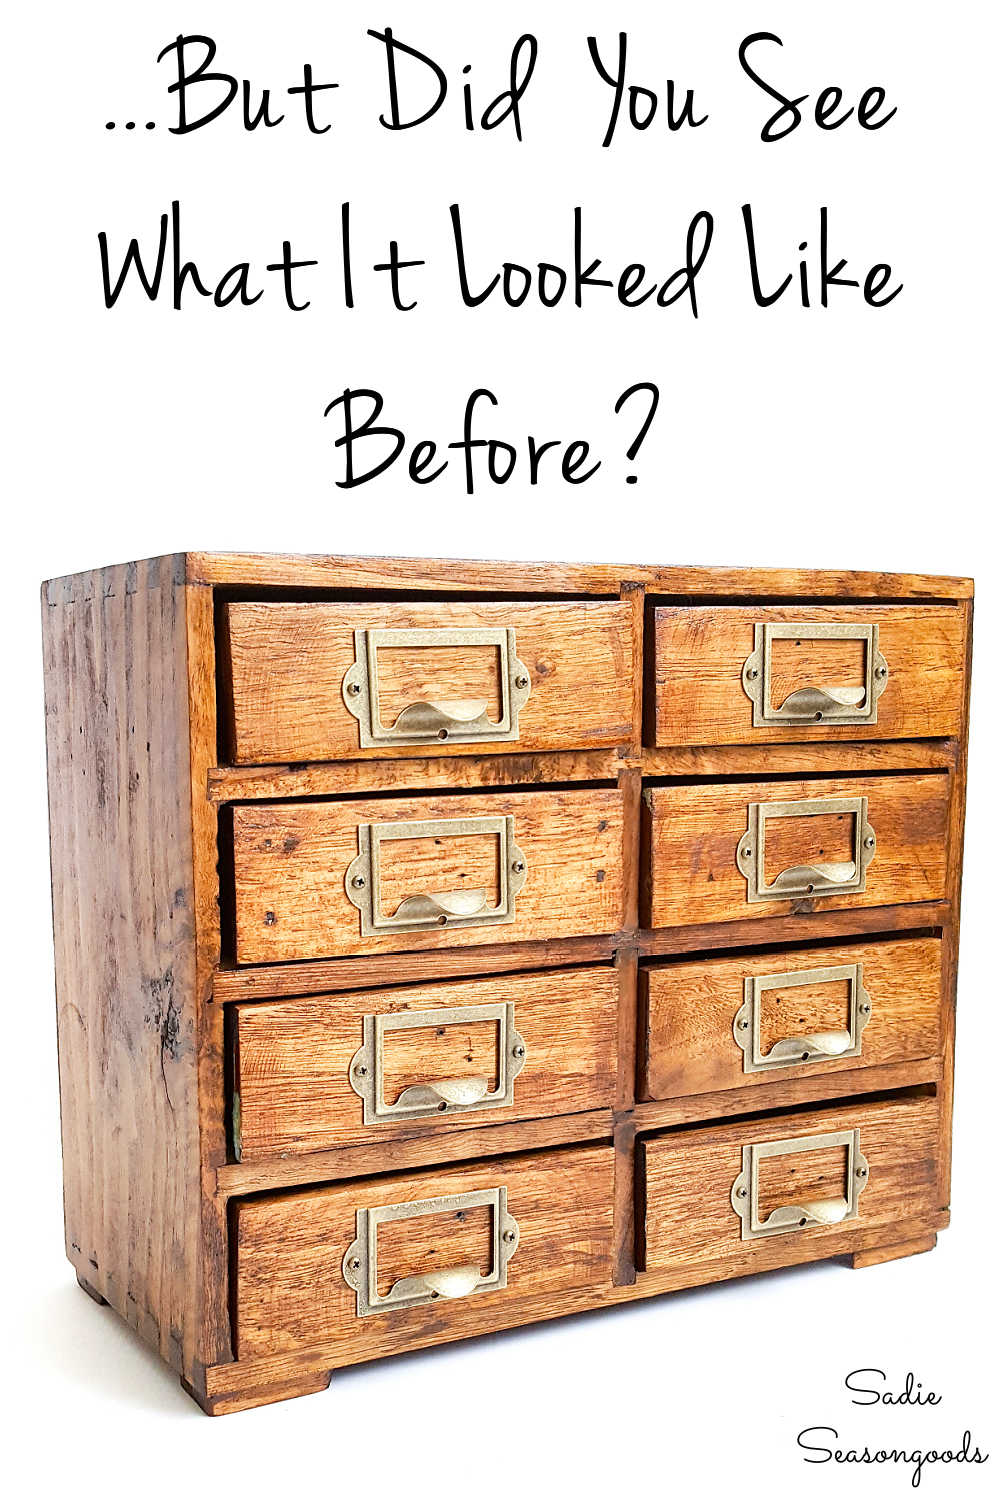 thrift store version of a vintage card catalog